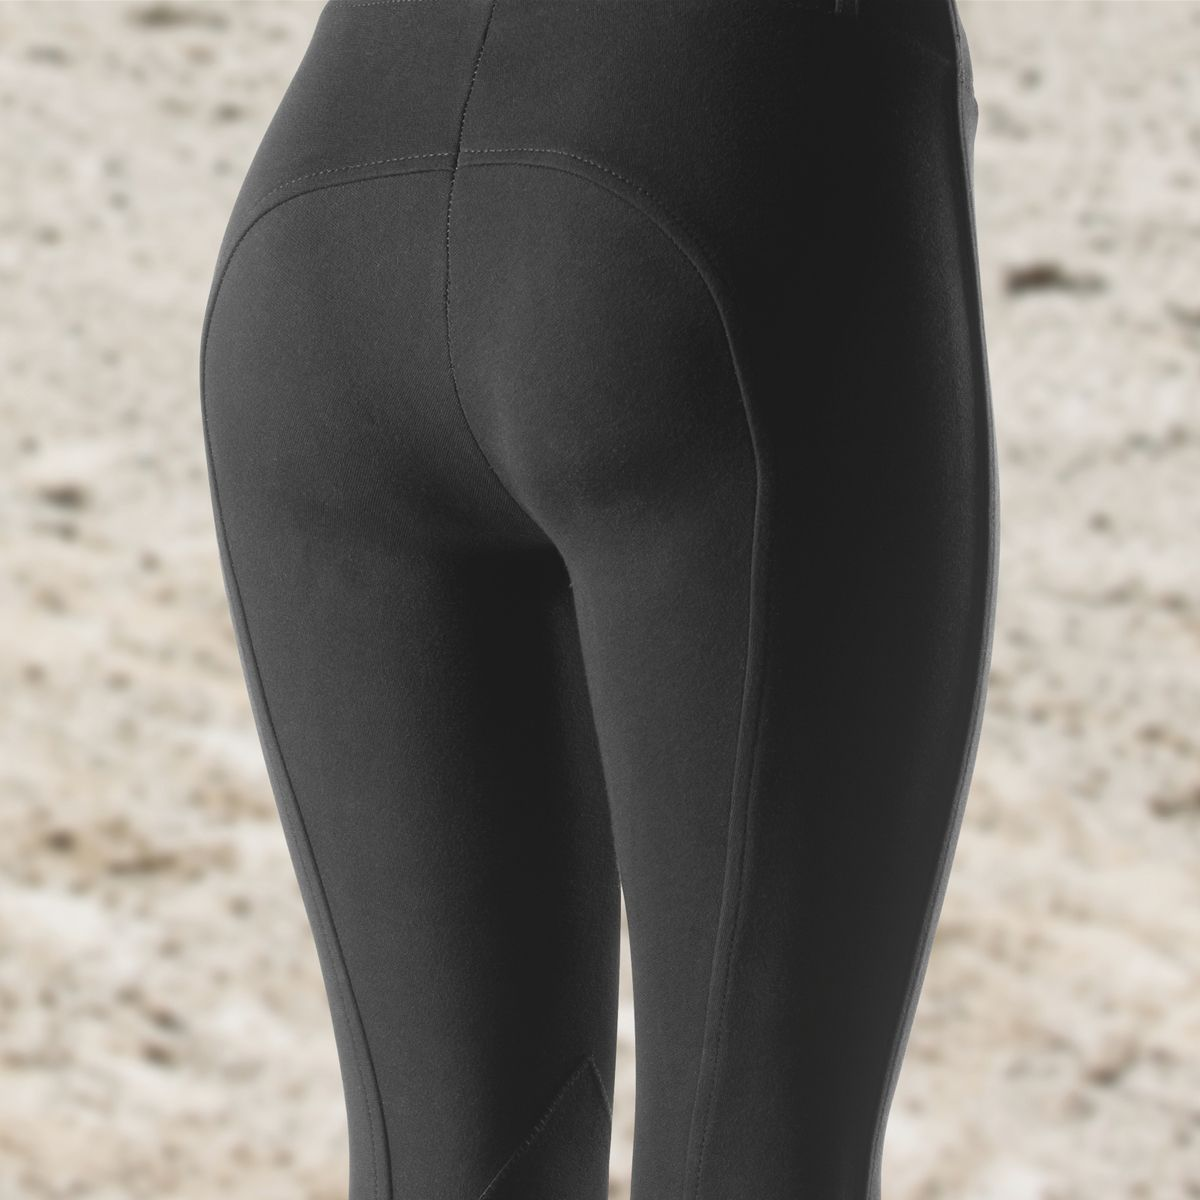 Horze-Ella-Women-039-s-Pull-On-Leather-Knee-Patch-Riding-Breeches-Knitted-Fabric thumbnail 8